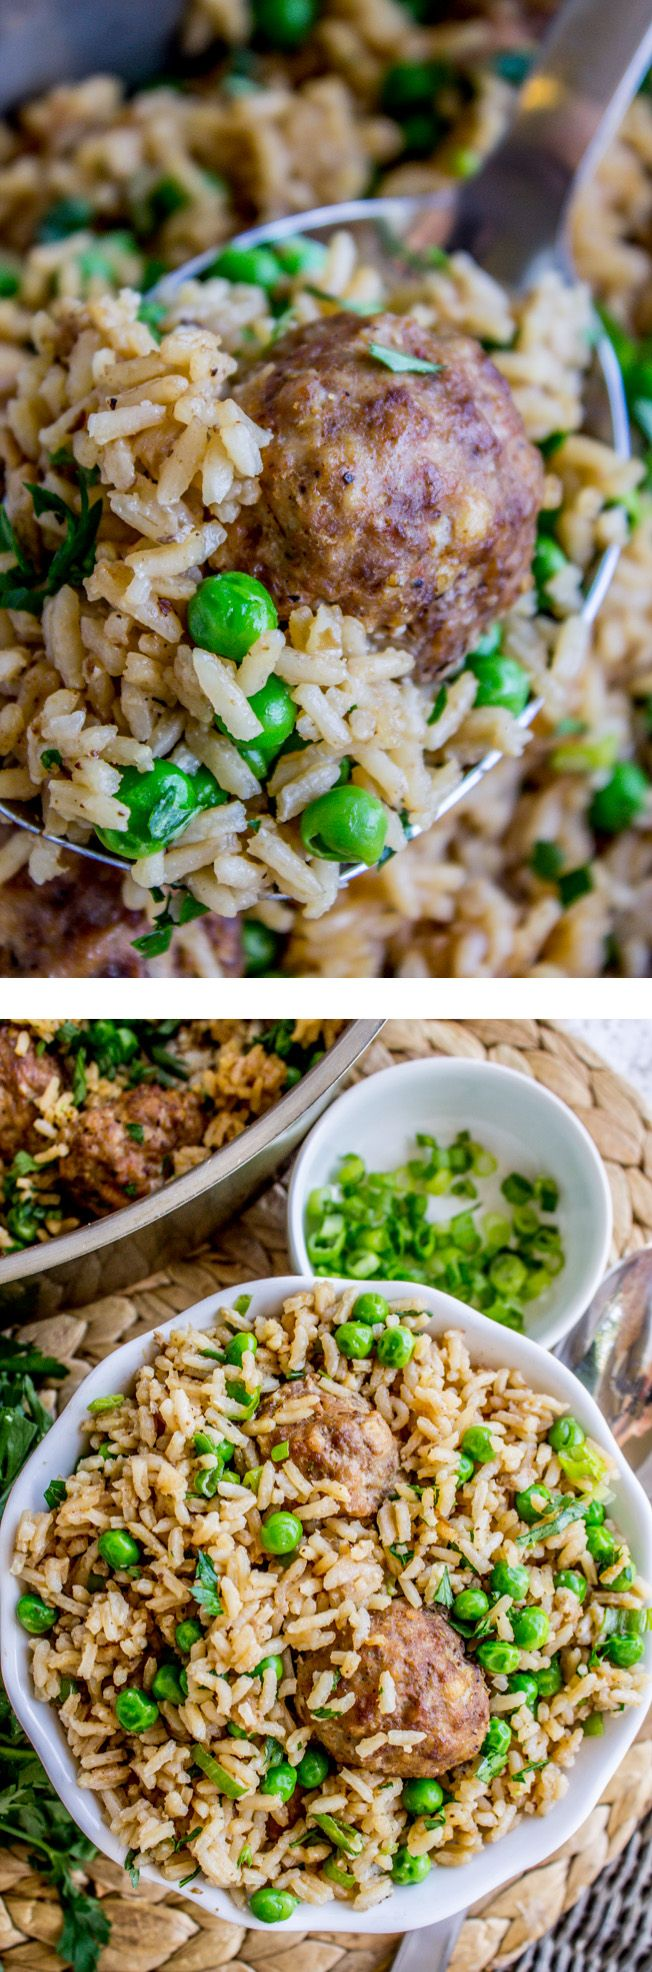 One Skillet Beef Meatballs with Rice and Peas recipe from The Food Charlatan. Say hello to your new favorite 30-minute-meal! This easy one-pot dish is great for nights when you forget about dinner until everyone is starving. The meatballs make it nice and hearty. Use store bought meatballs to speed things up even more! My kids loved this one!